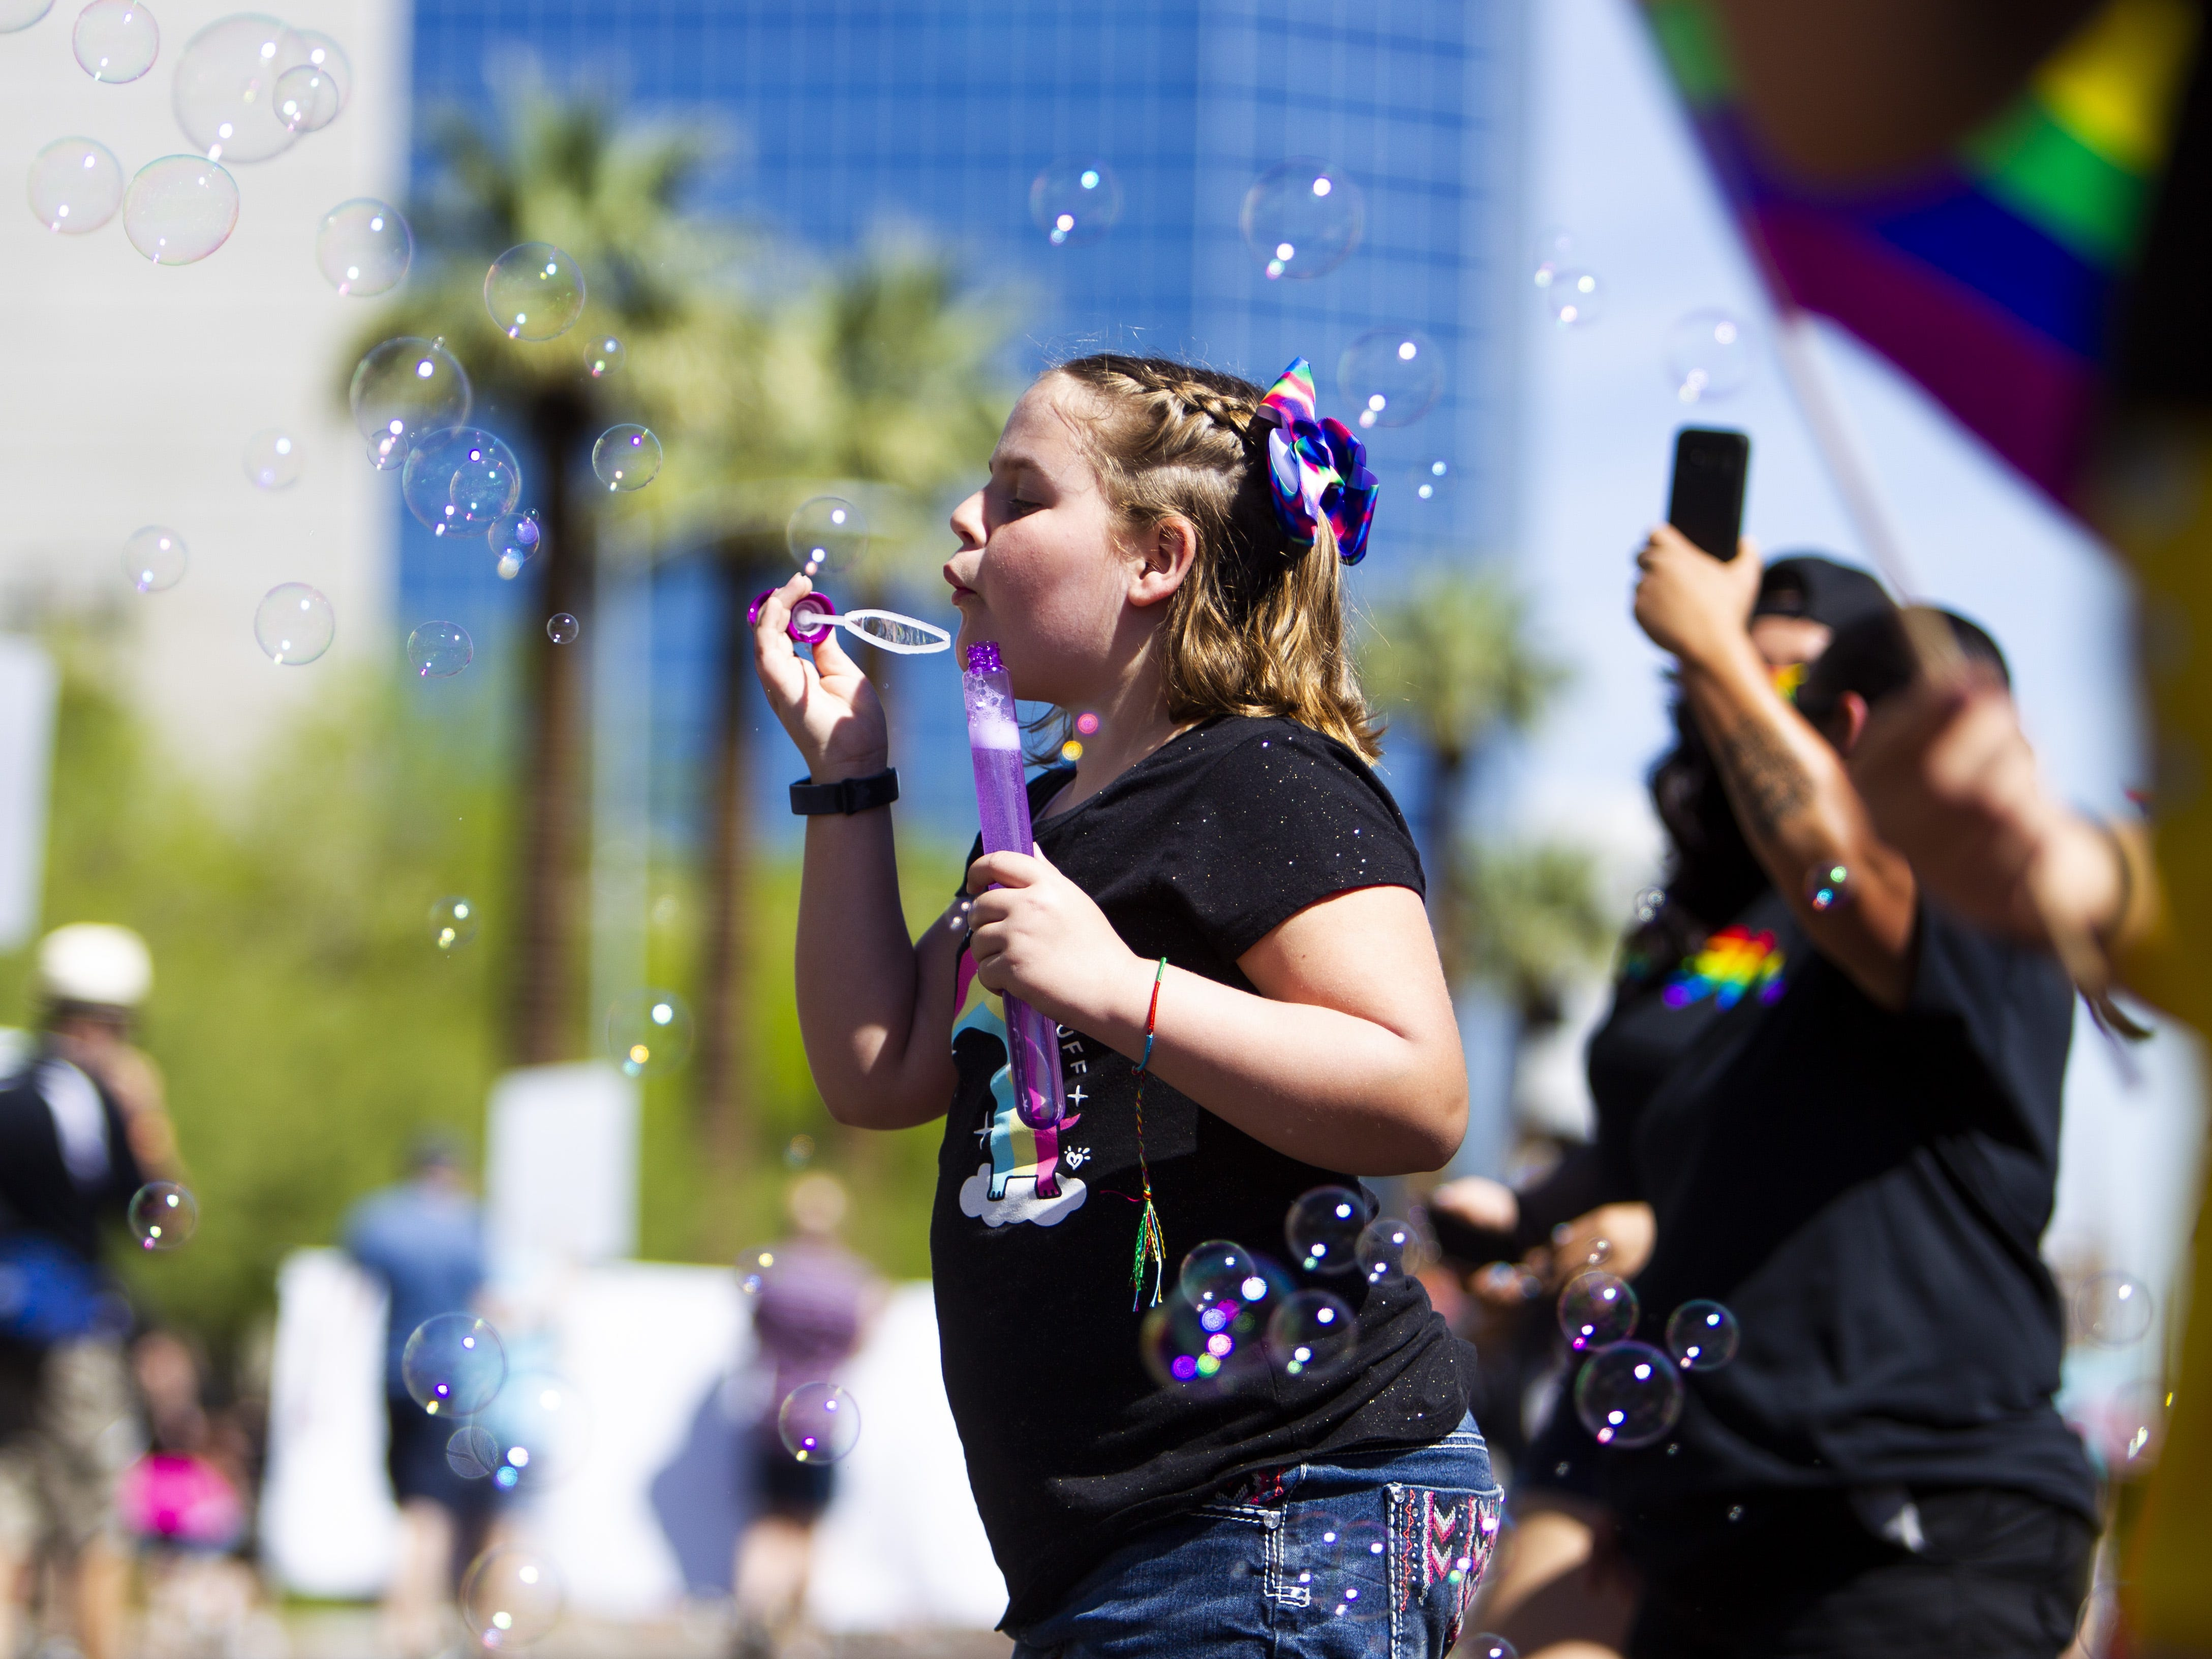 A girl blows bubbles during the Phoenix Pride Parade on April 7, 2019.